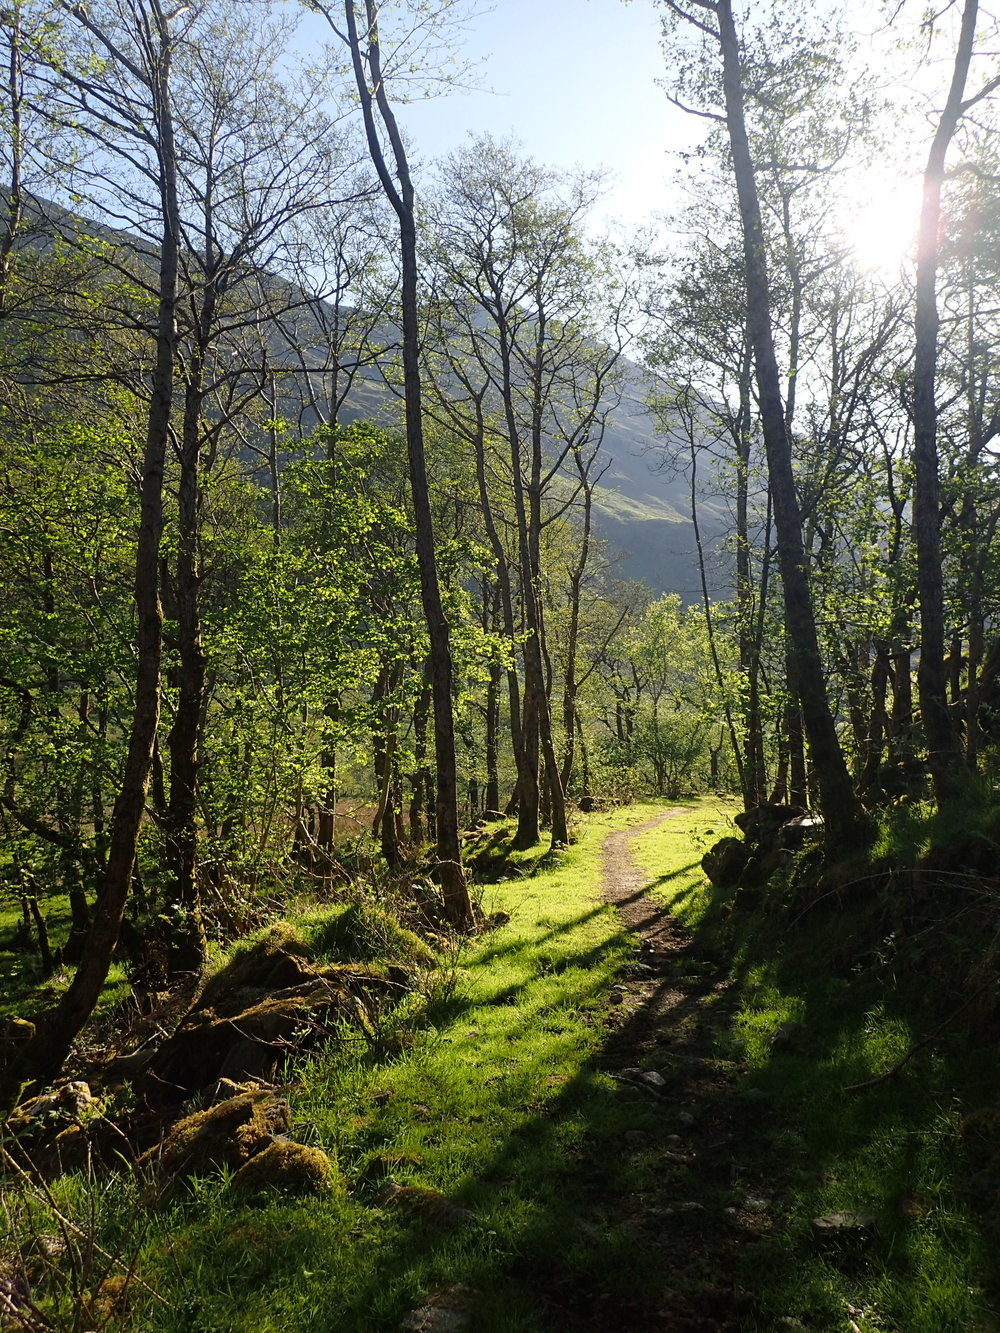 Five Sister & The Brothers of Kintail - May 24, 2018